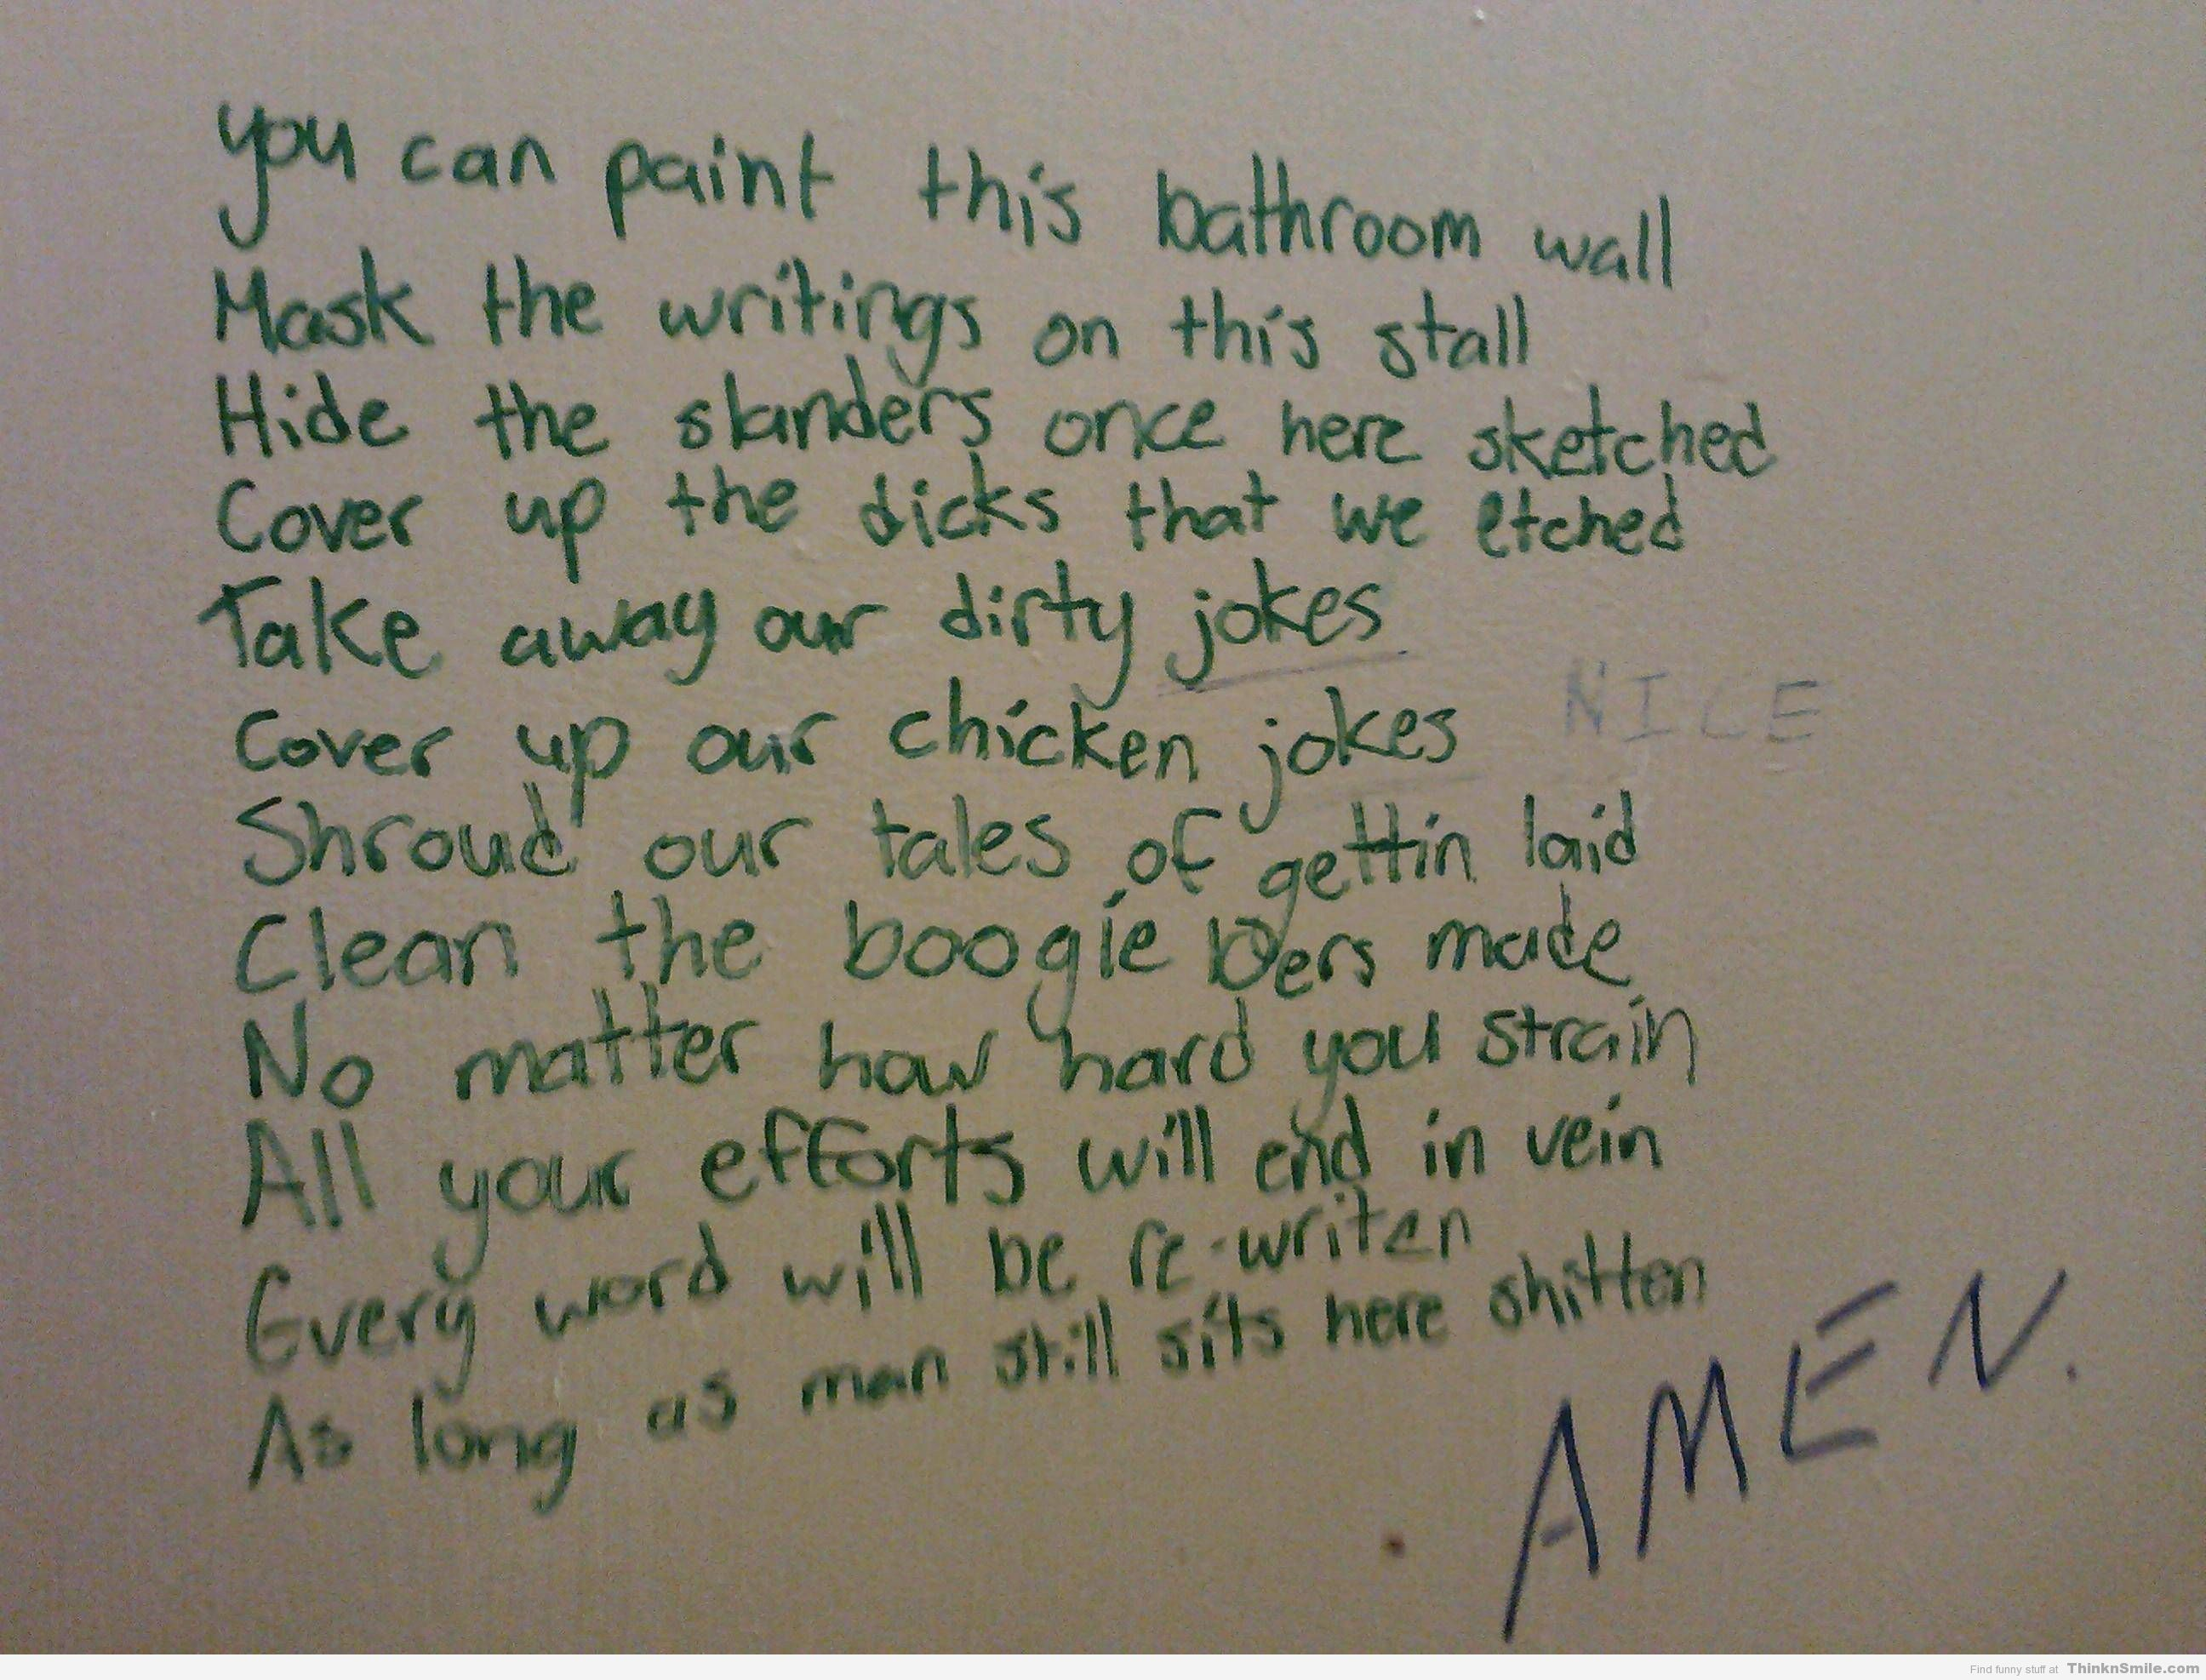 Best Bathroom Stall Quotes epic bathroom stall poem | funnyshiz - repin me! | pinterest